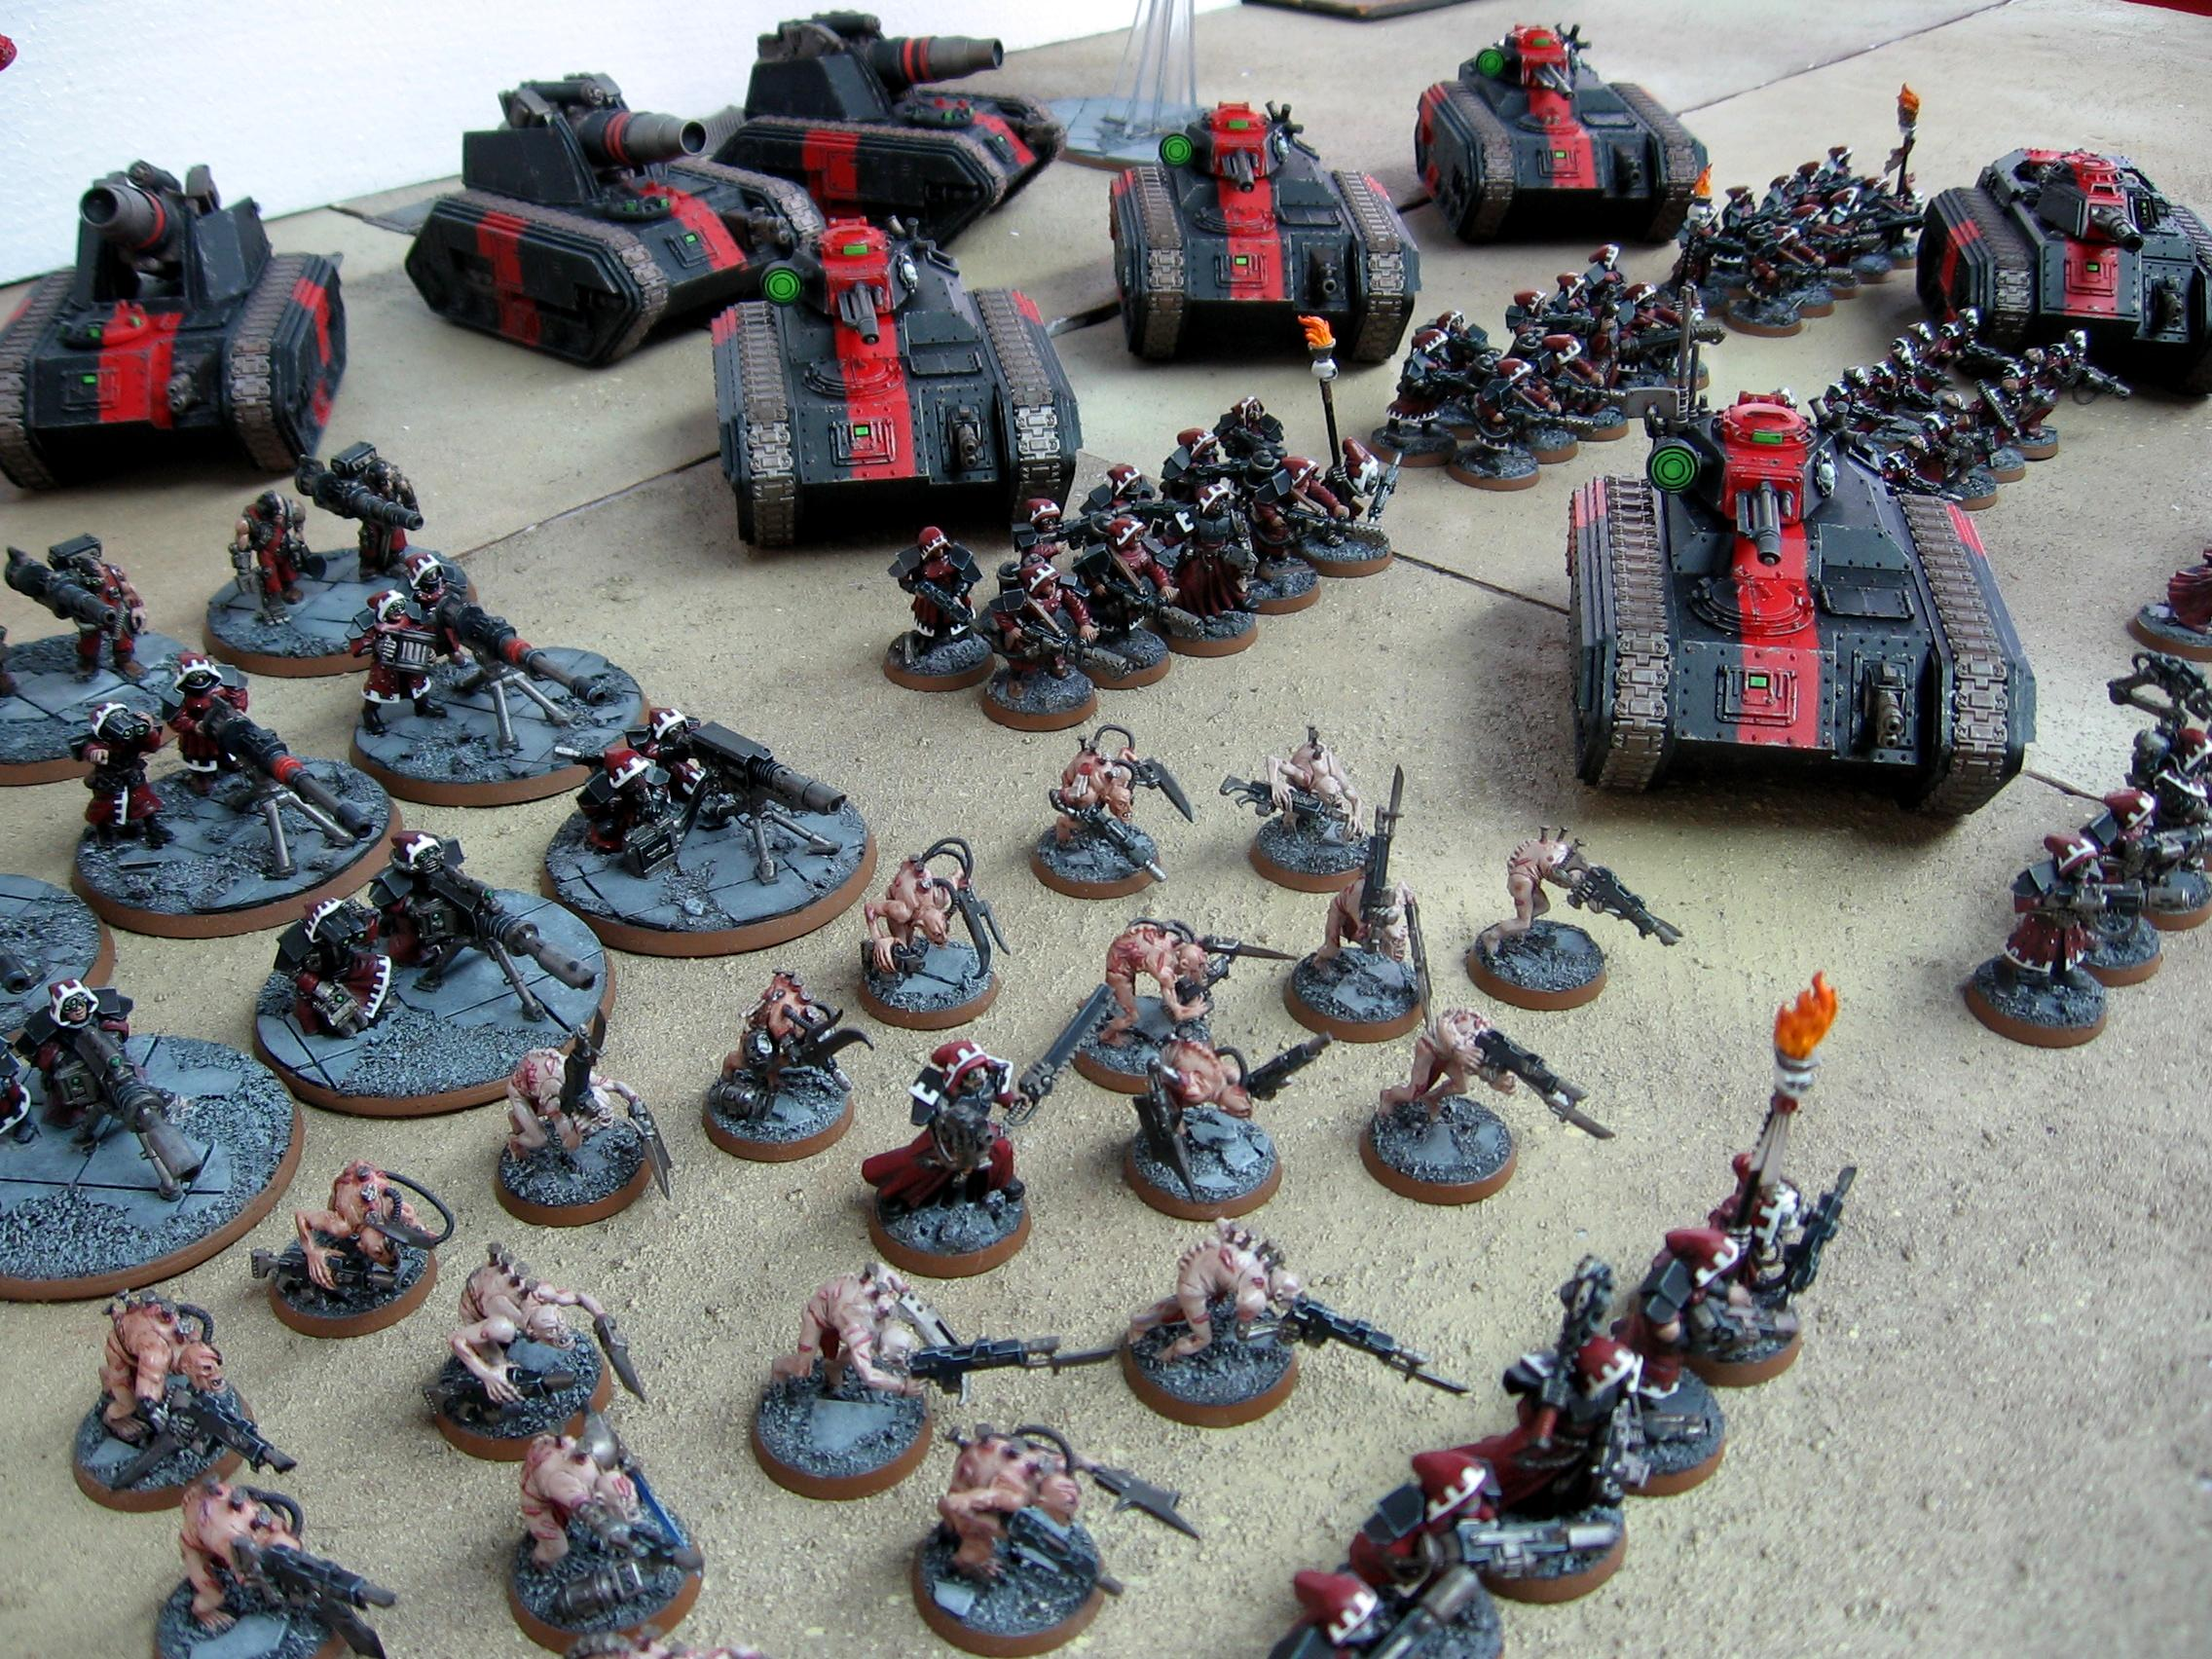 Adeptus Mechanicus, Army, Chimera, Conversion, Ghoul, Guard, Imperial, Imperial Guard, Mechanicus, Tank, Warhammer 40,000